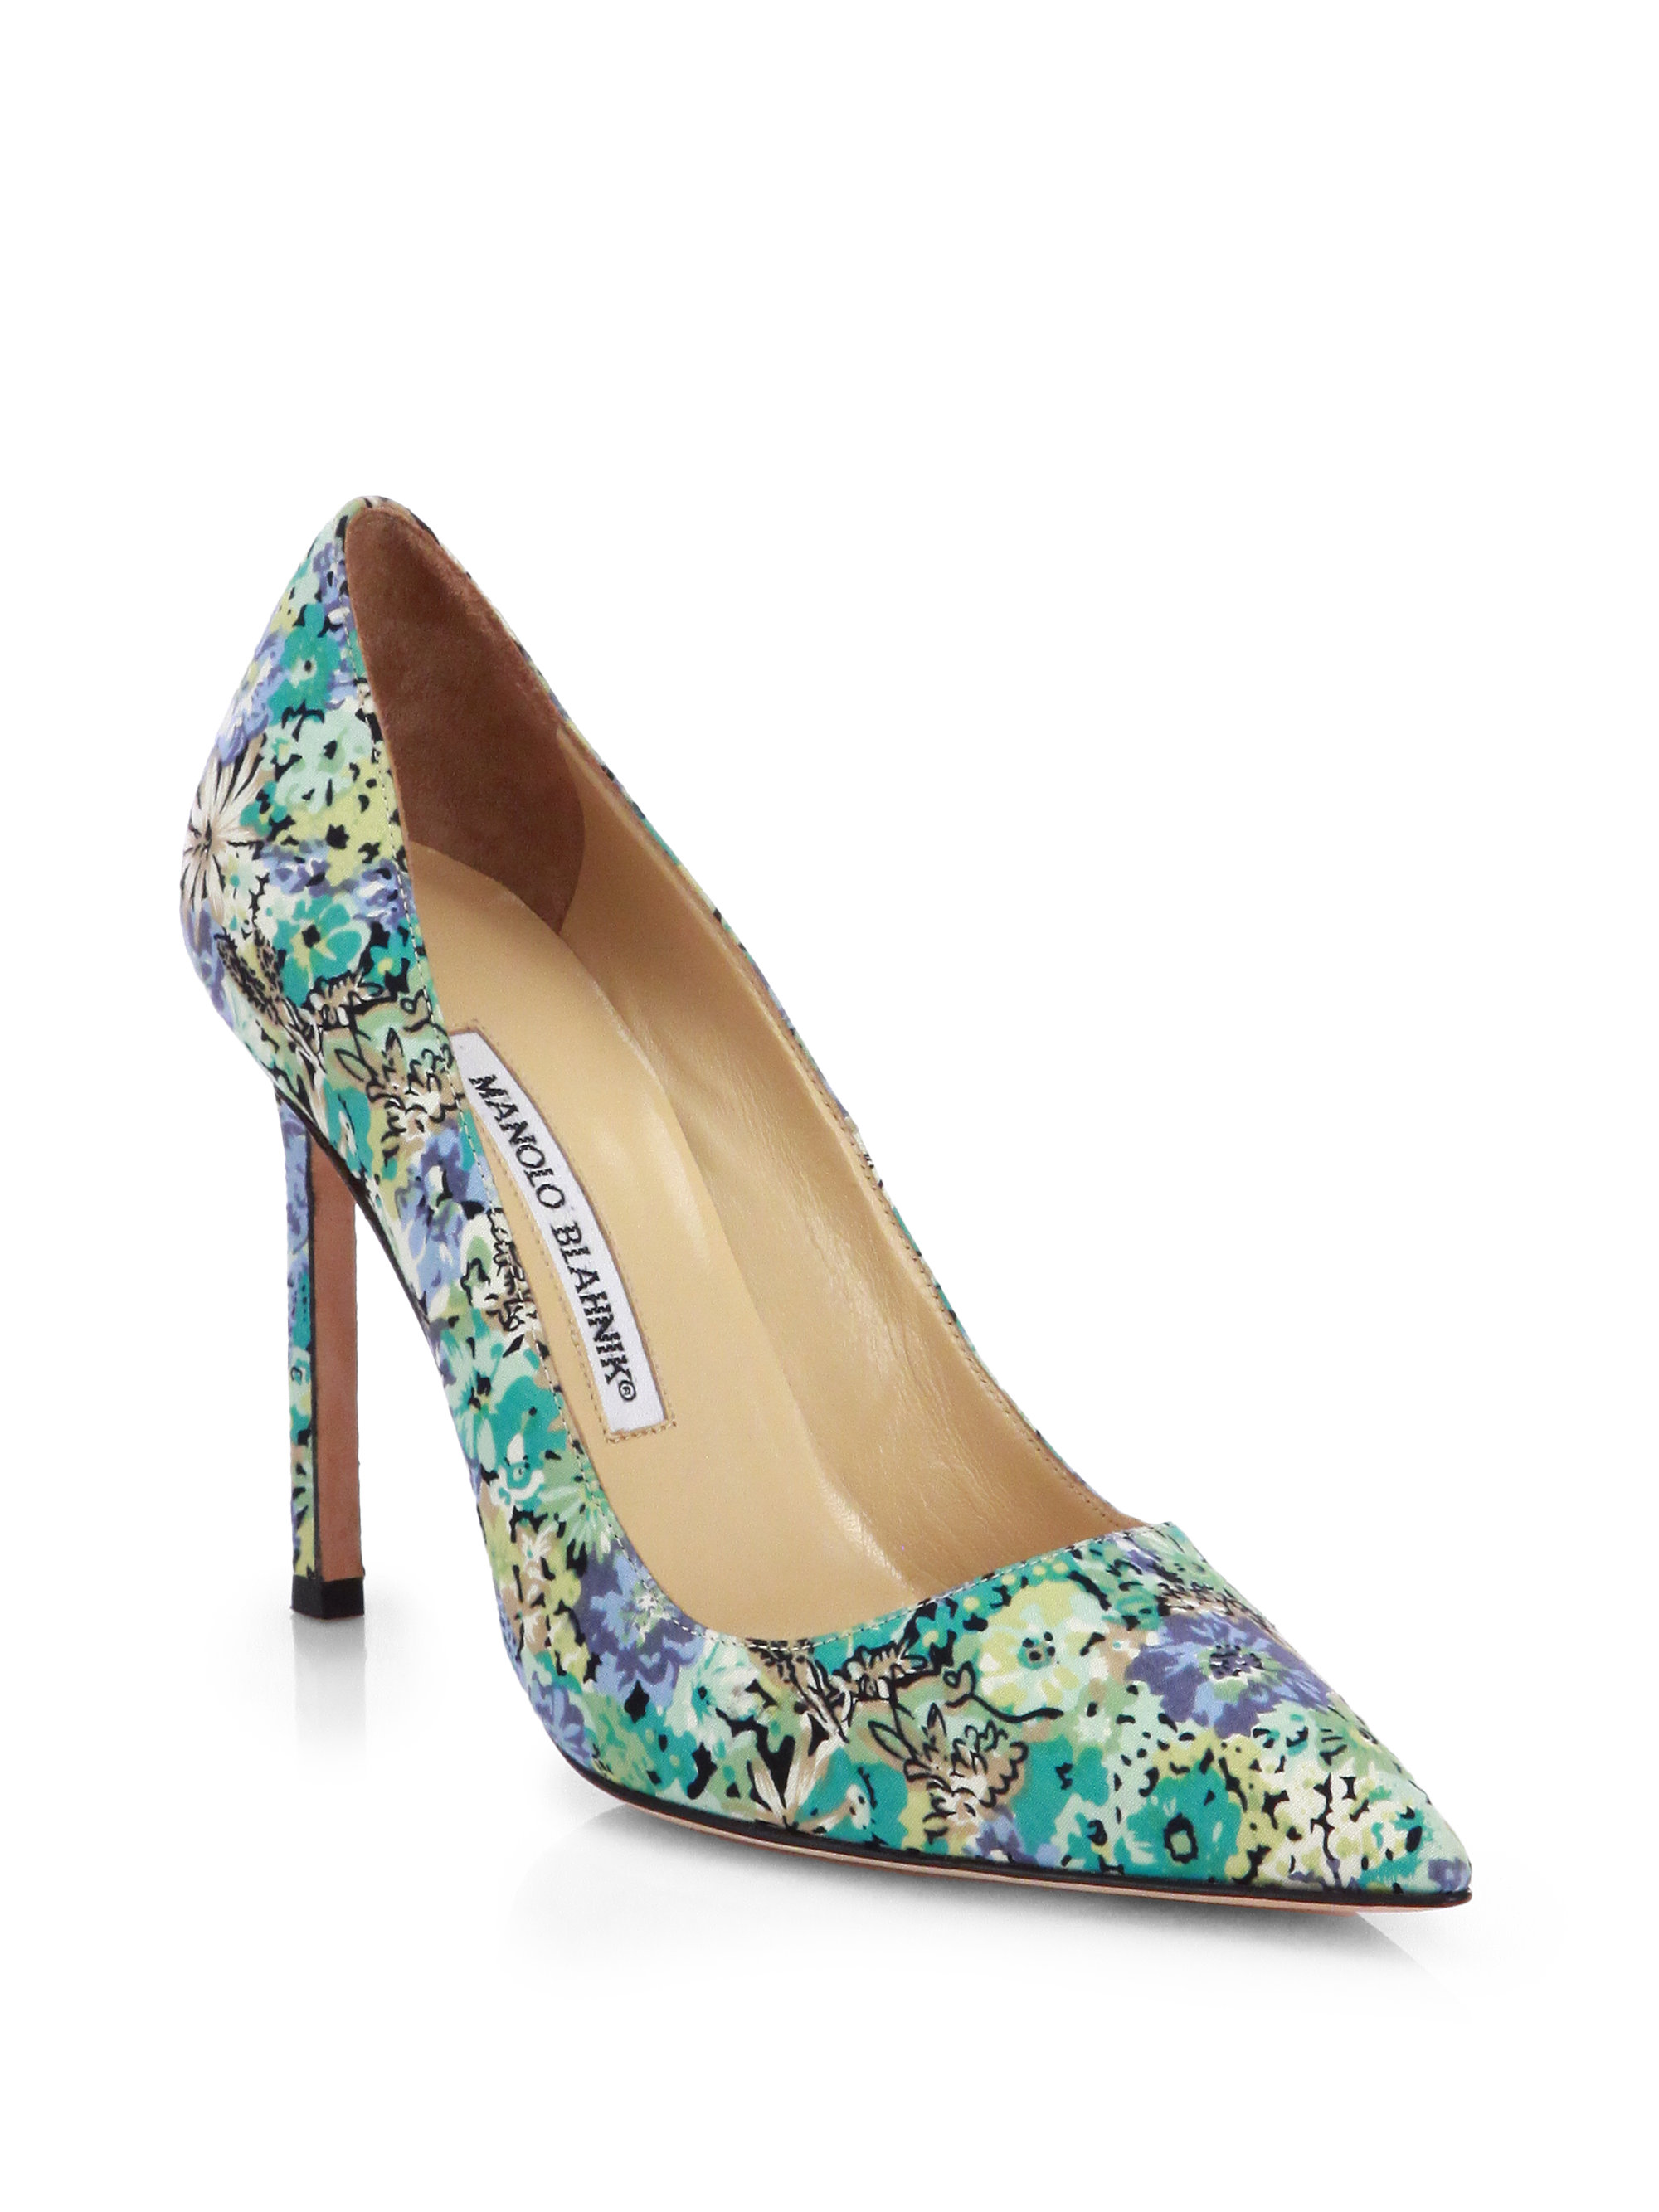 b5e901908da3 Lyst - Manolo Blahnik Bb Floralprint Pumps in Blue